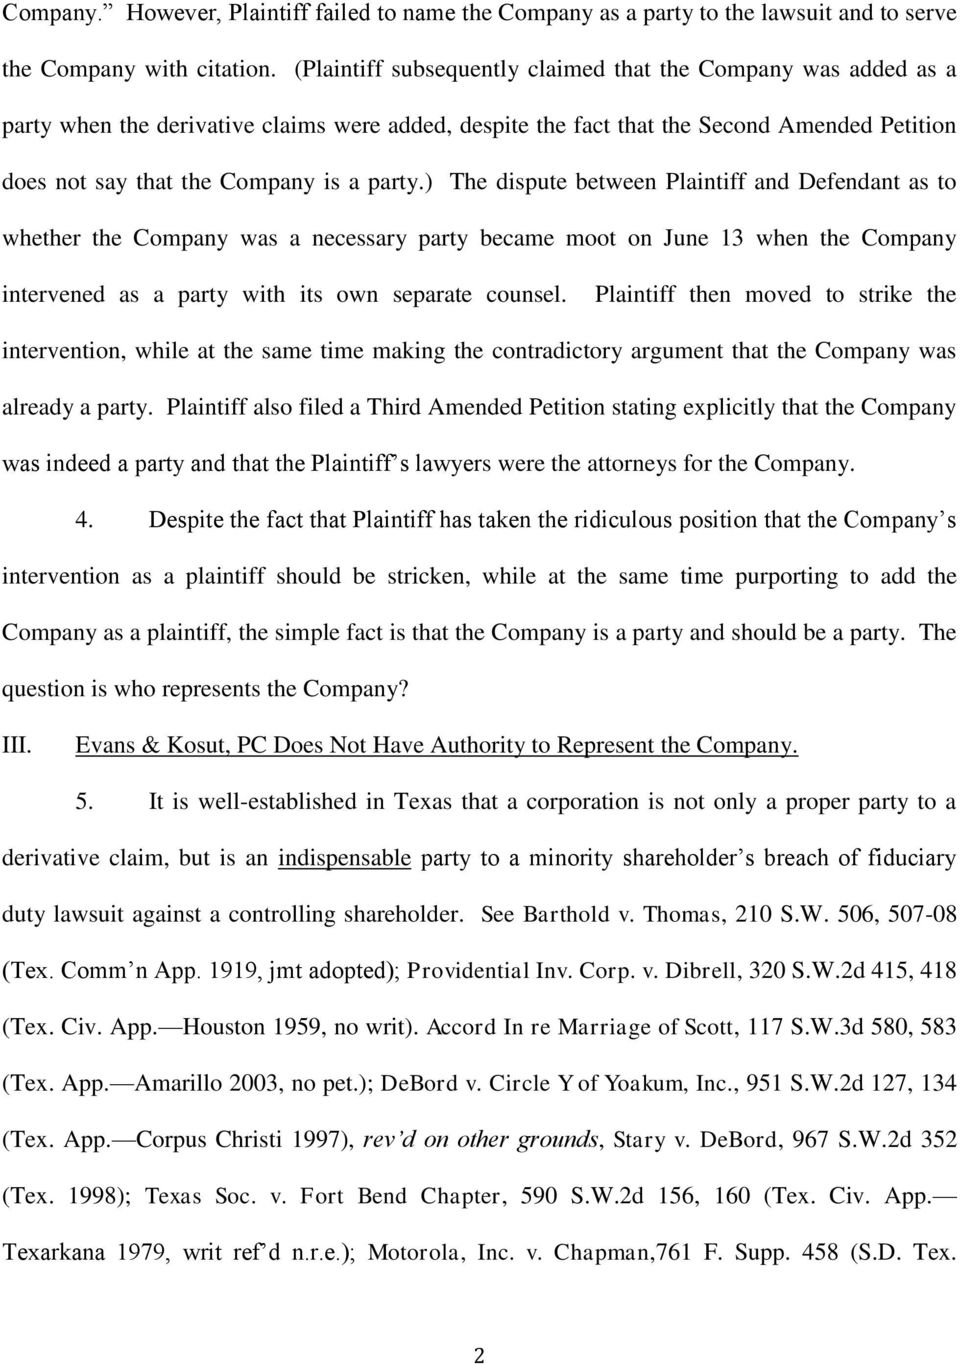 ) The dispute between Plaintiff and Defendant as to whether the Company was a necessary party became moot on June 13 when the Company intervened as a party with its own separate counsel.